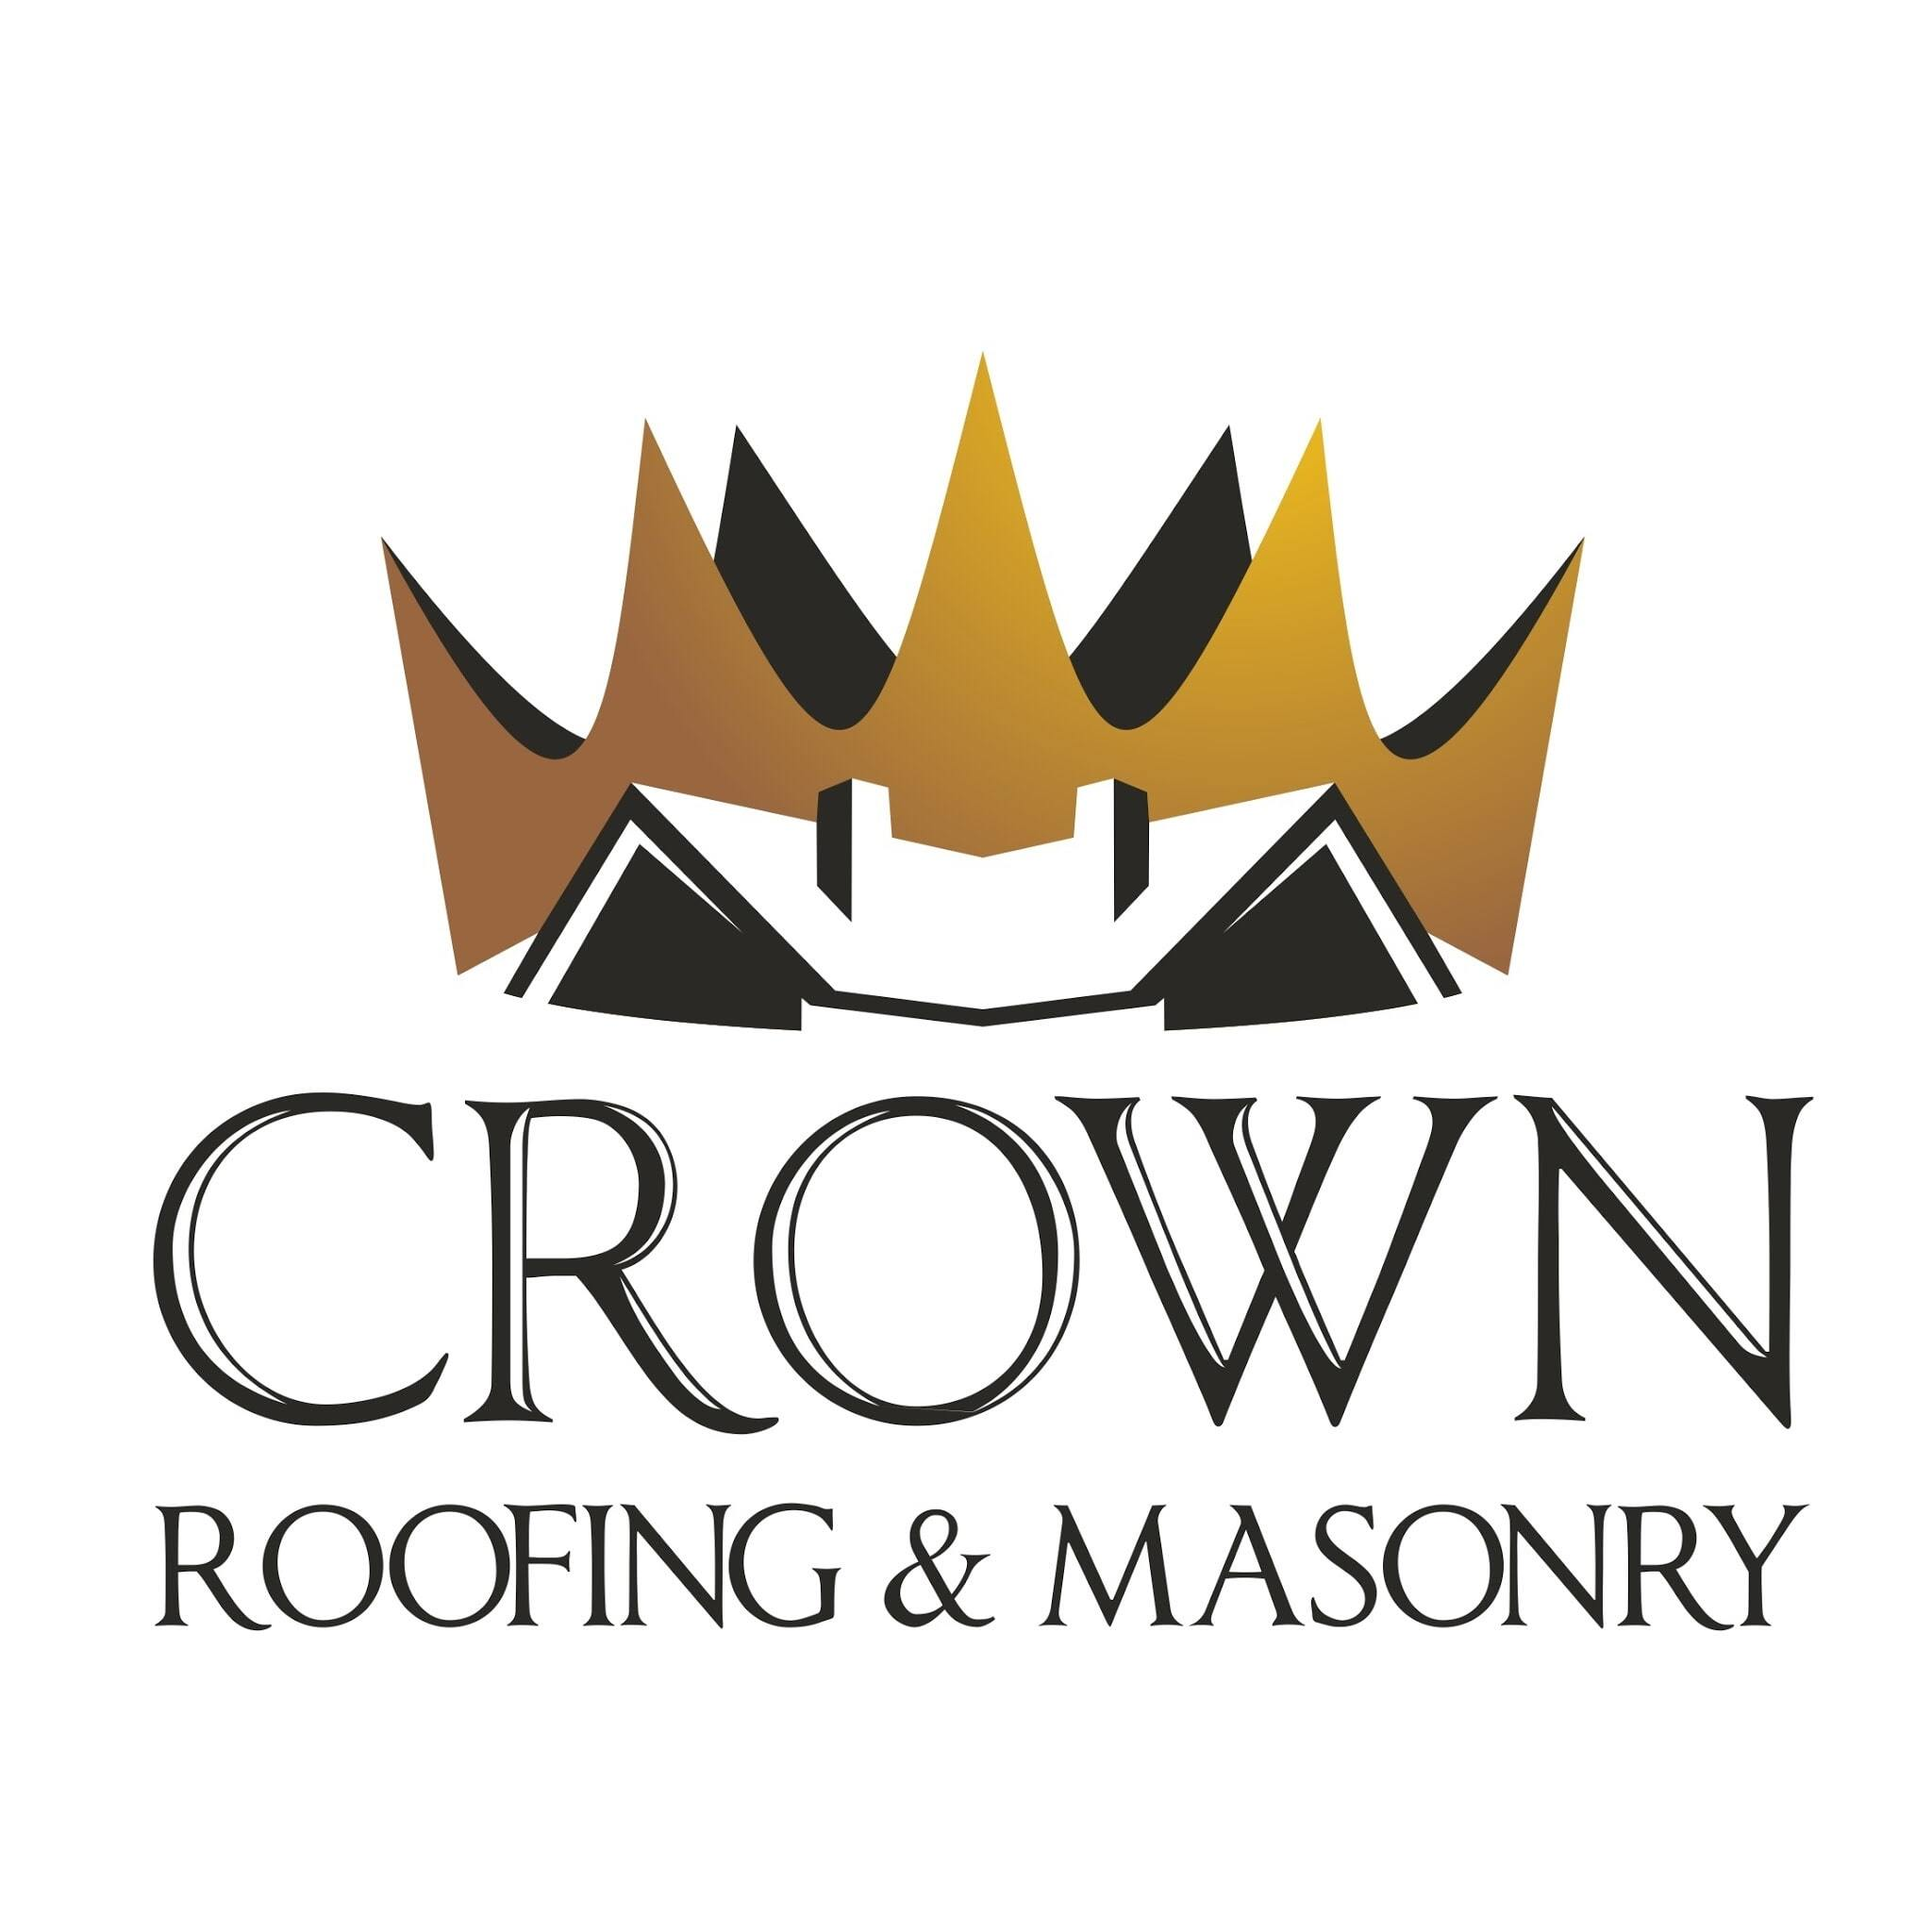 Crown Roofing And Masonry Co.